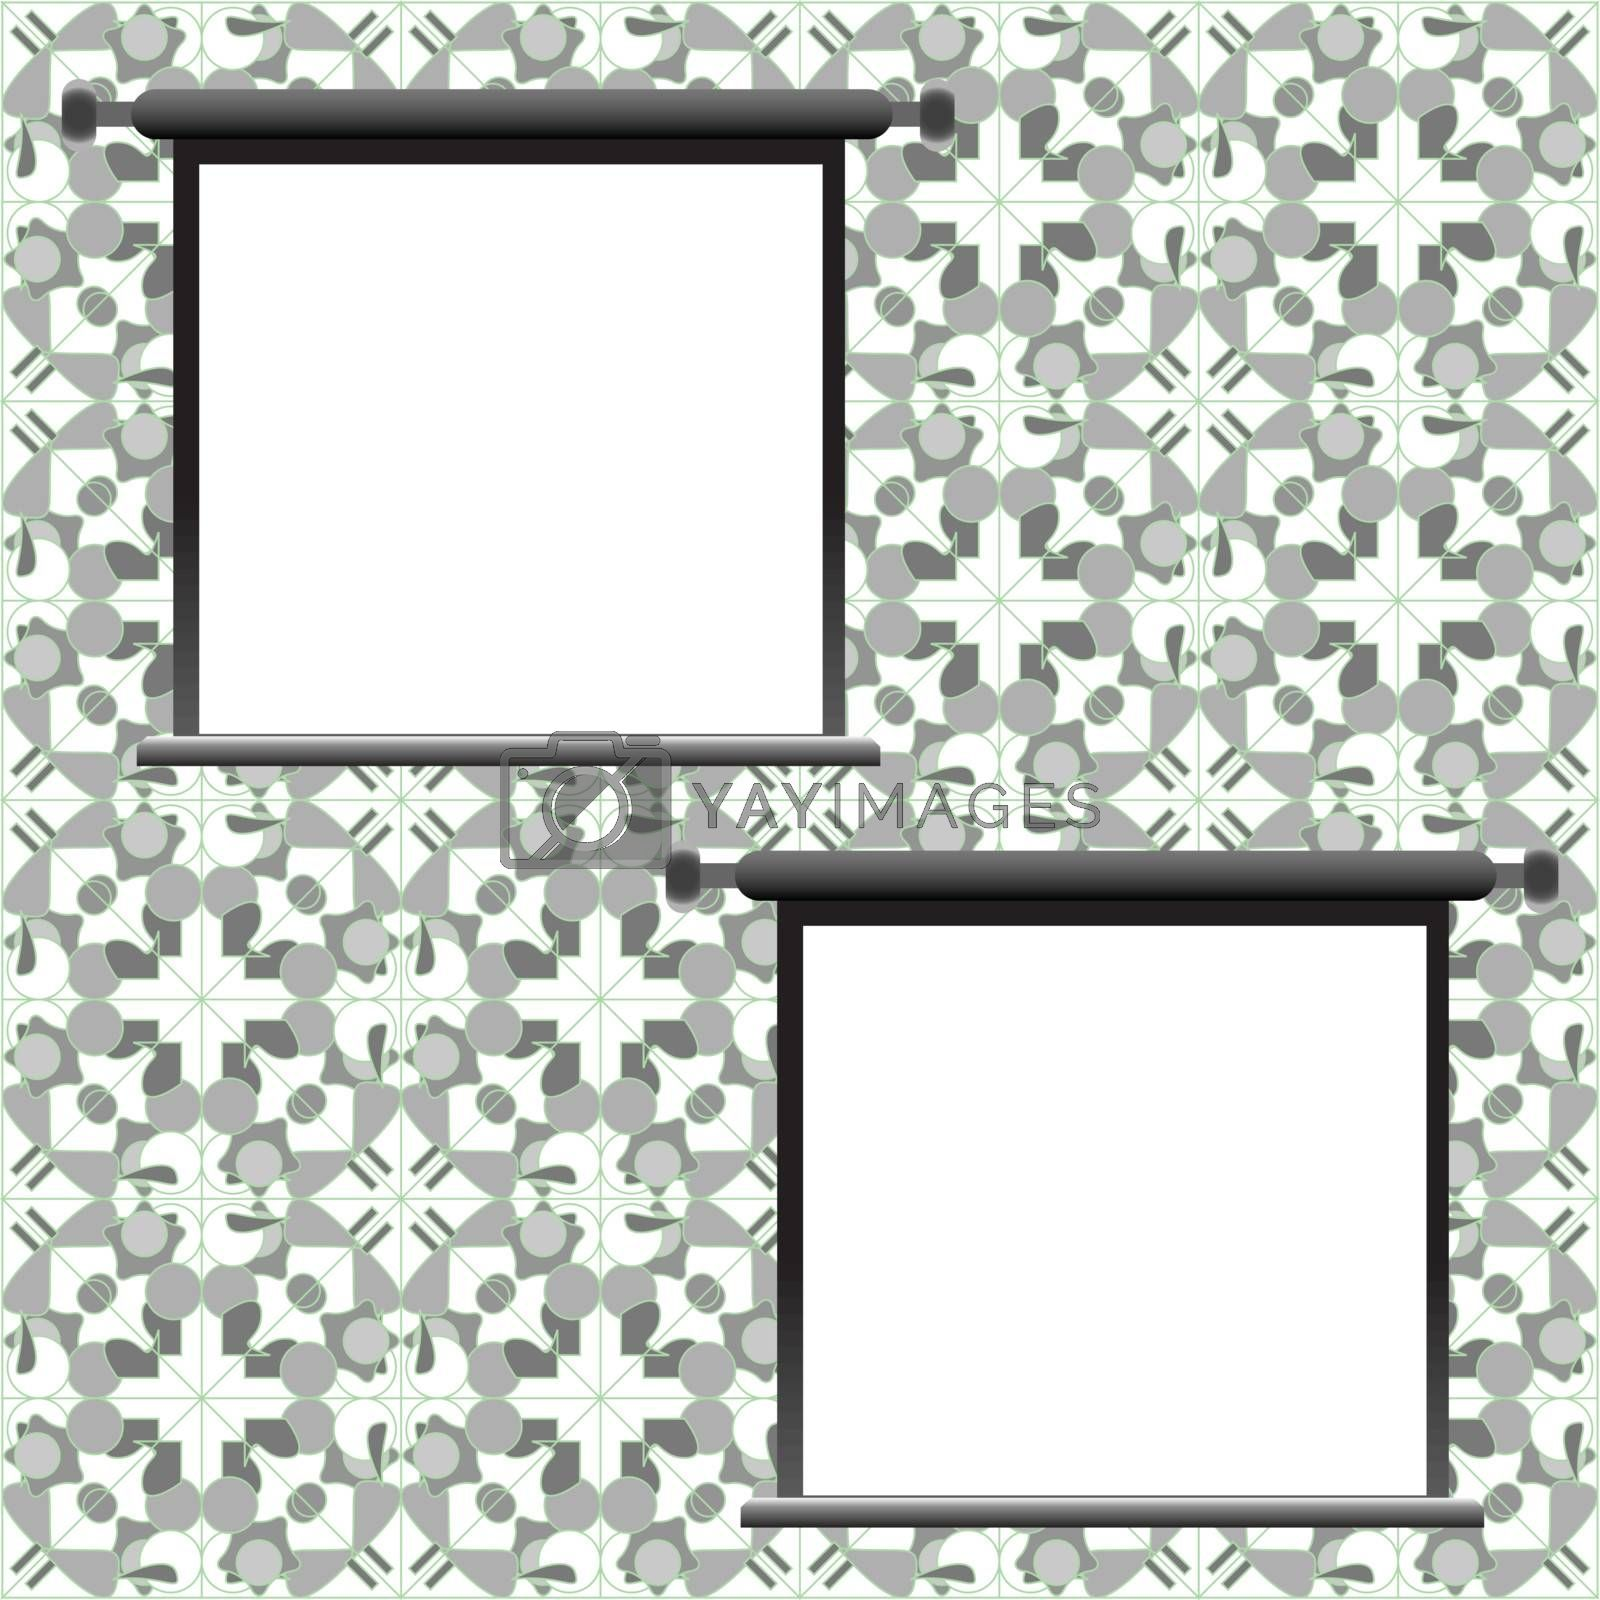 Grungy antique wallpaper background with empty frame. vector